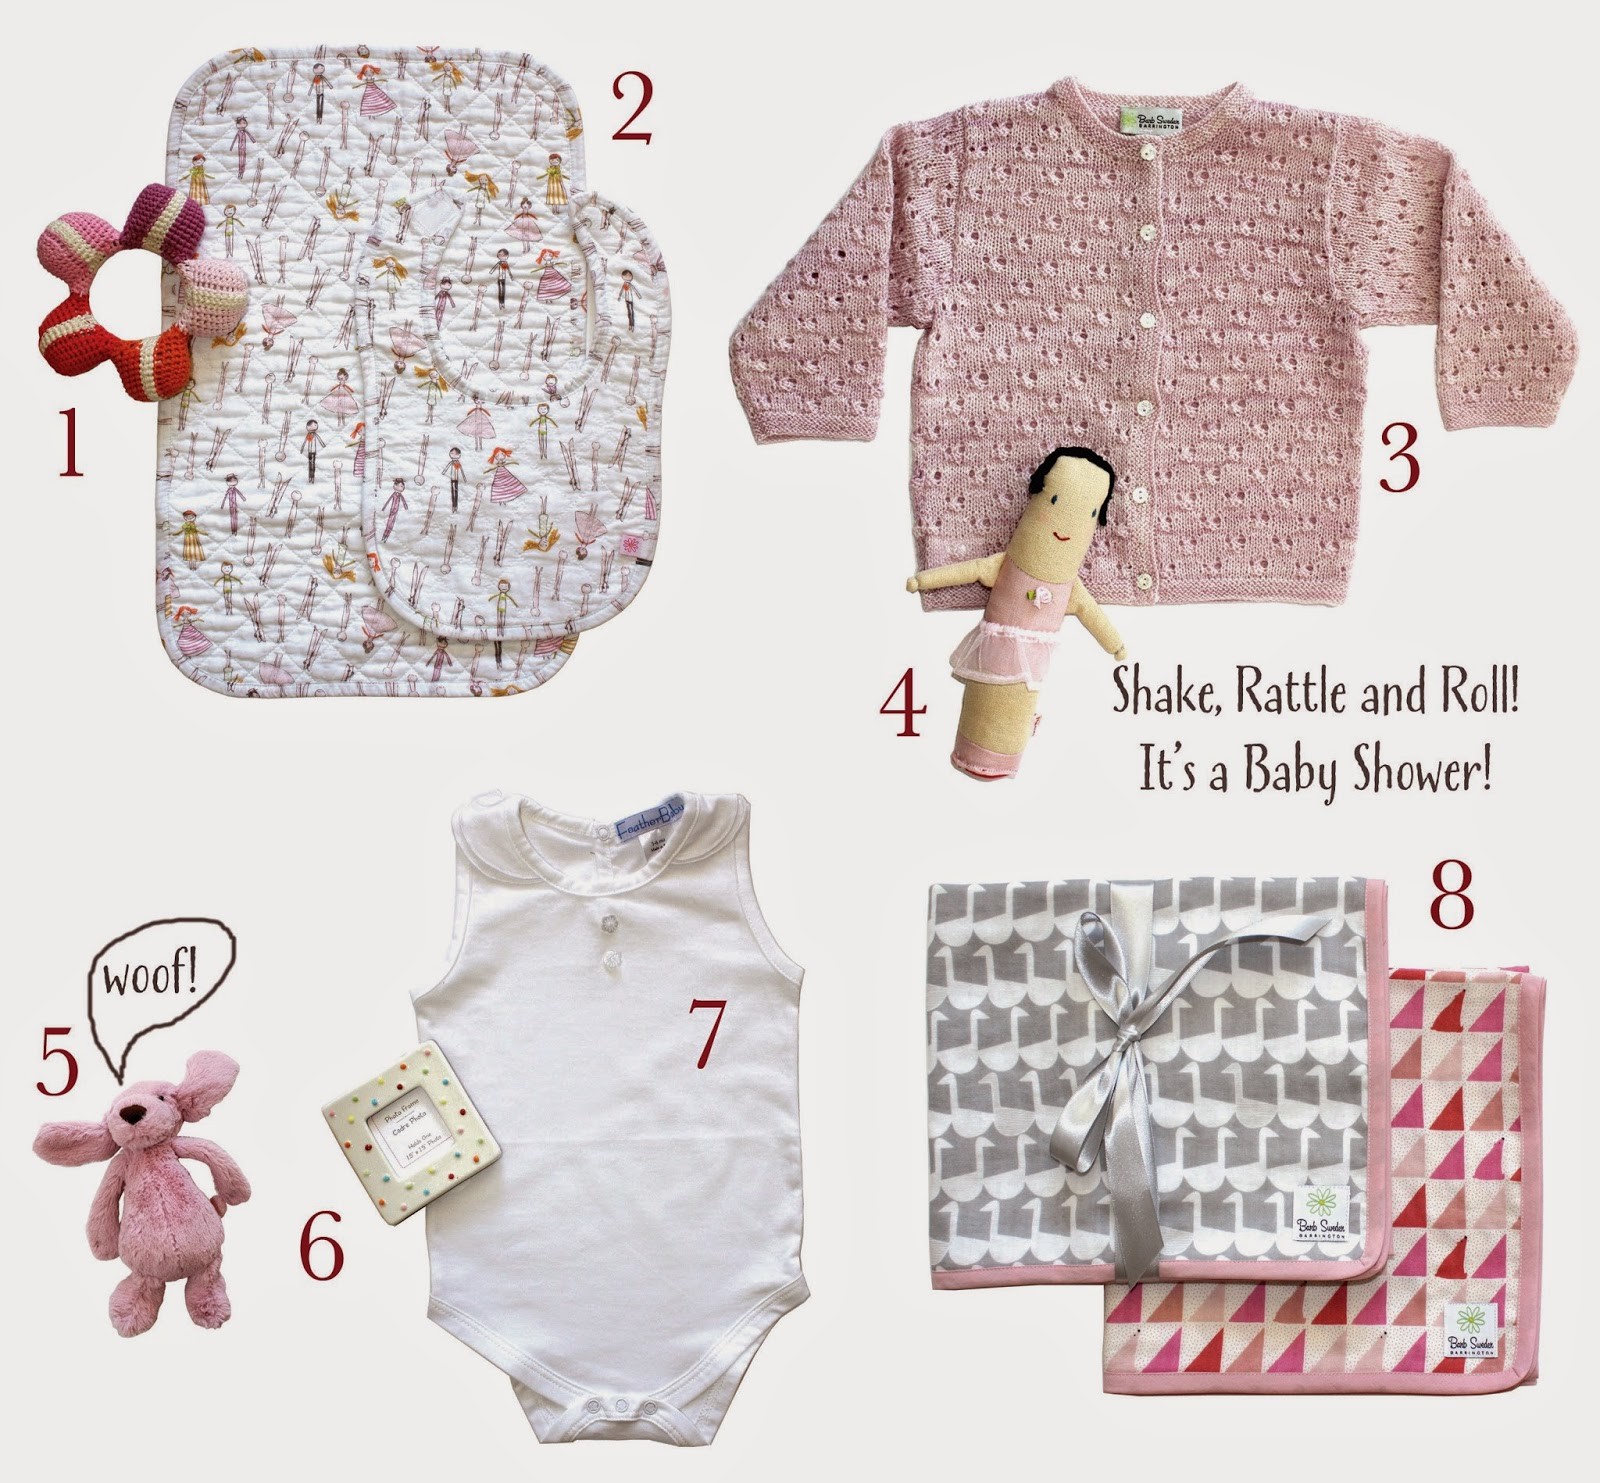 Baby Gift Recommendations : Barb sweder barrington